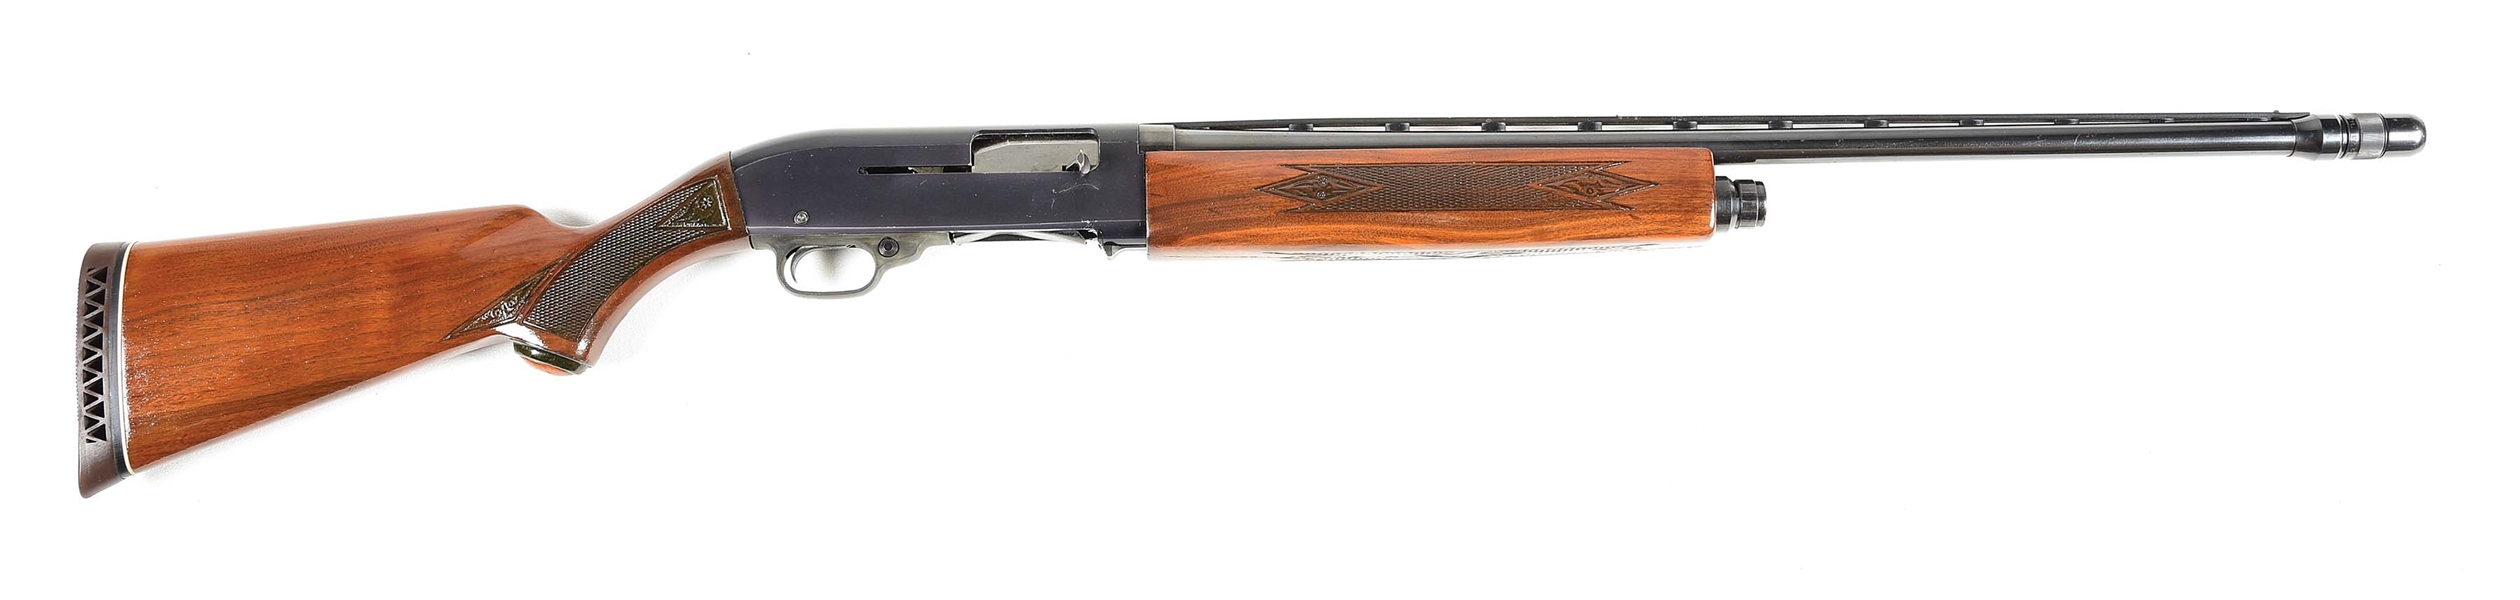 (C) SEARS ROEBUCK TED WILLIAMS M300 12 BORE SEMI-AUTOMATIC SHOTGUN.